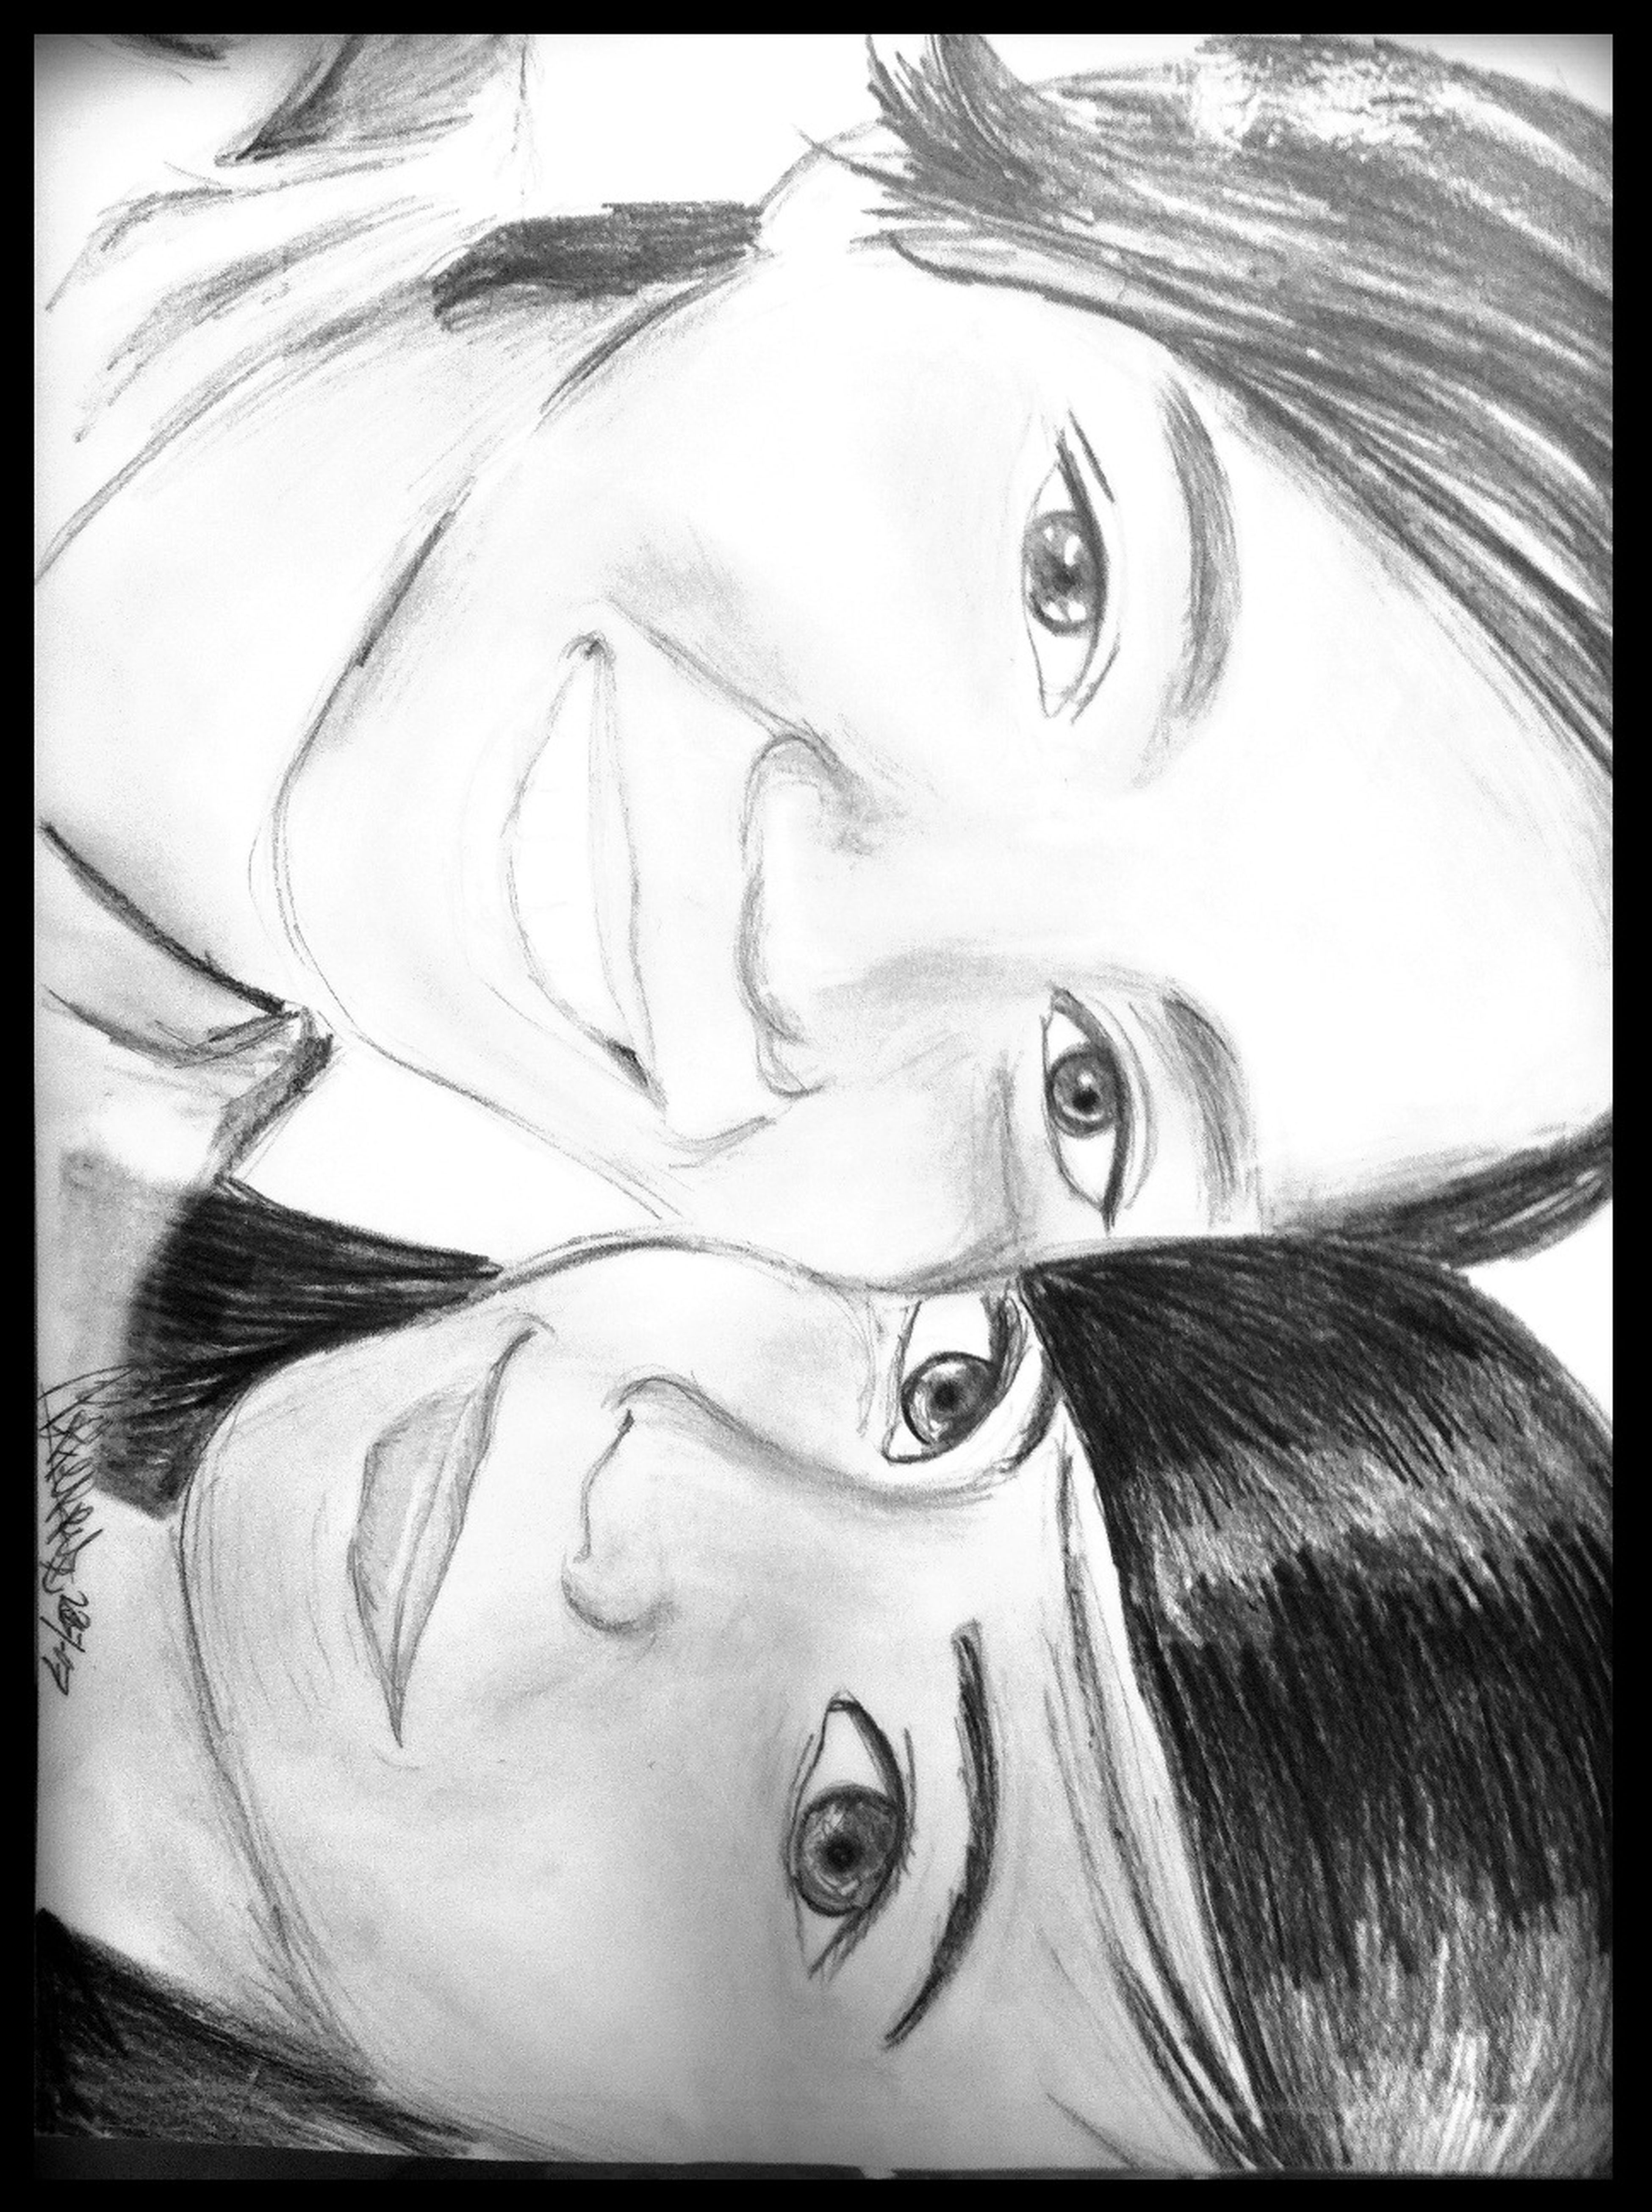 my first sketch potrait for loves at ZKL's Family Fort My First Sketch Potrait For Loves